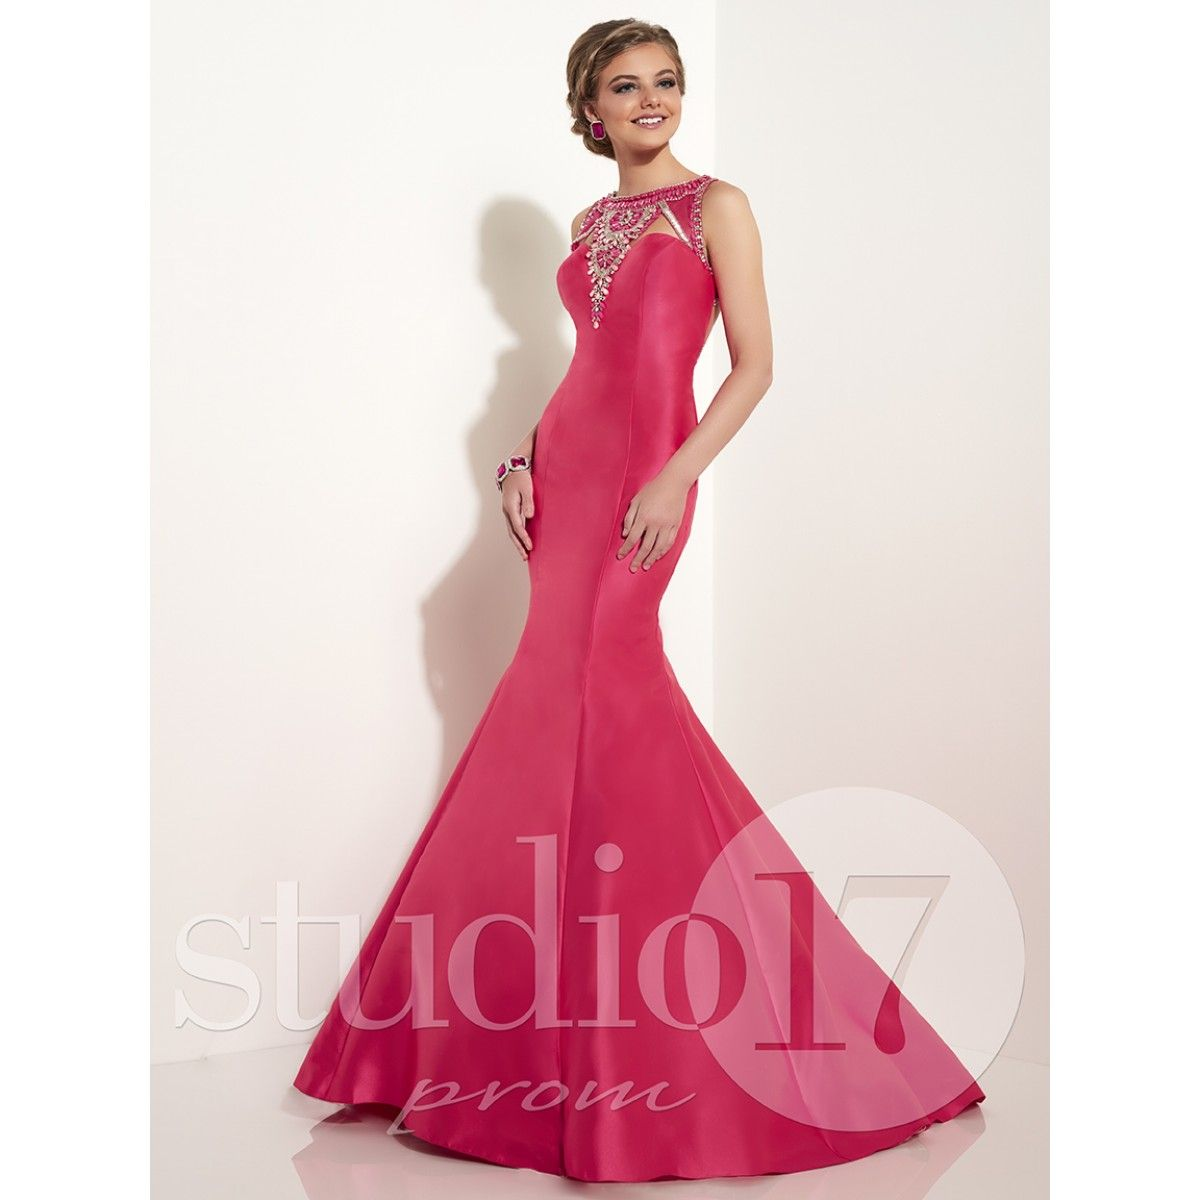 New   Style 12629 - Studio 17 DISCONTINUED   PROM 2018   Pinterest